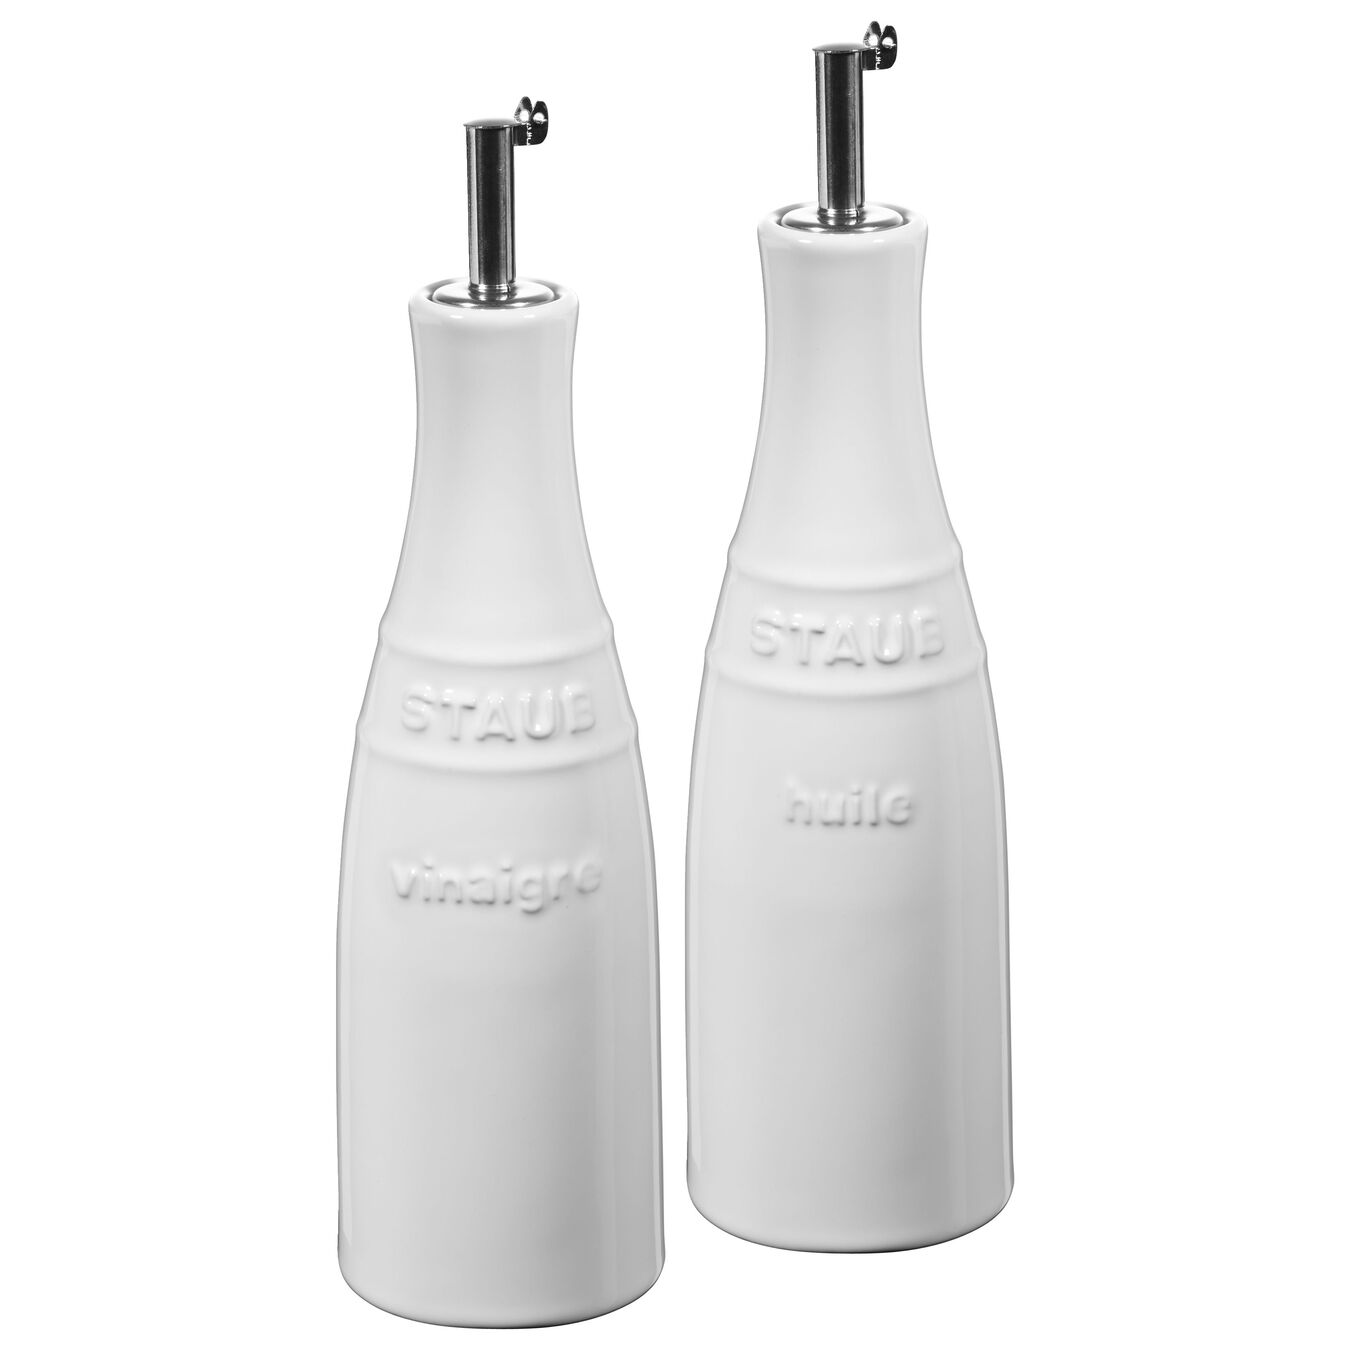 250 ml / 2 Piece Oil and vinegar set, pure-white,,large 1